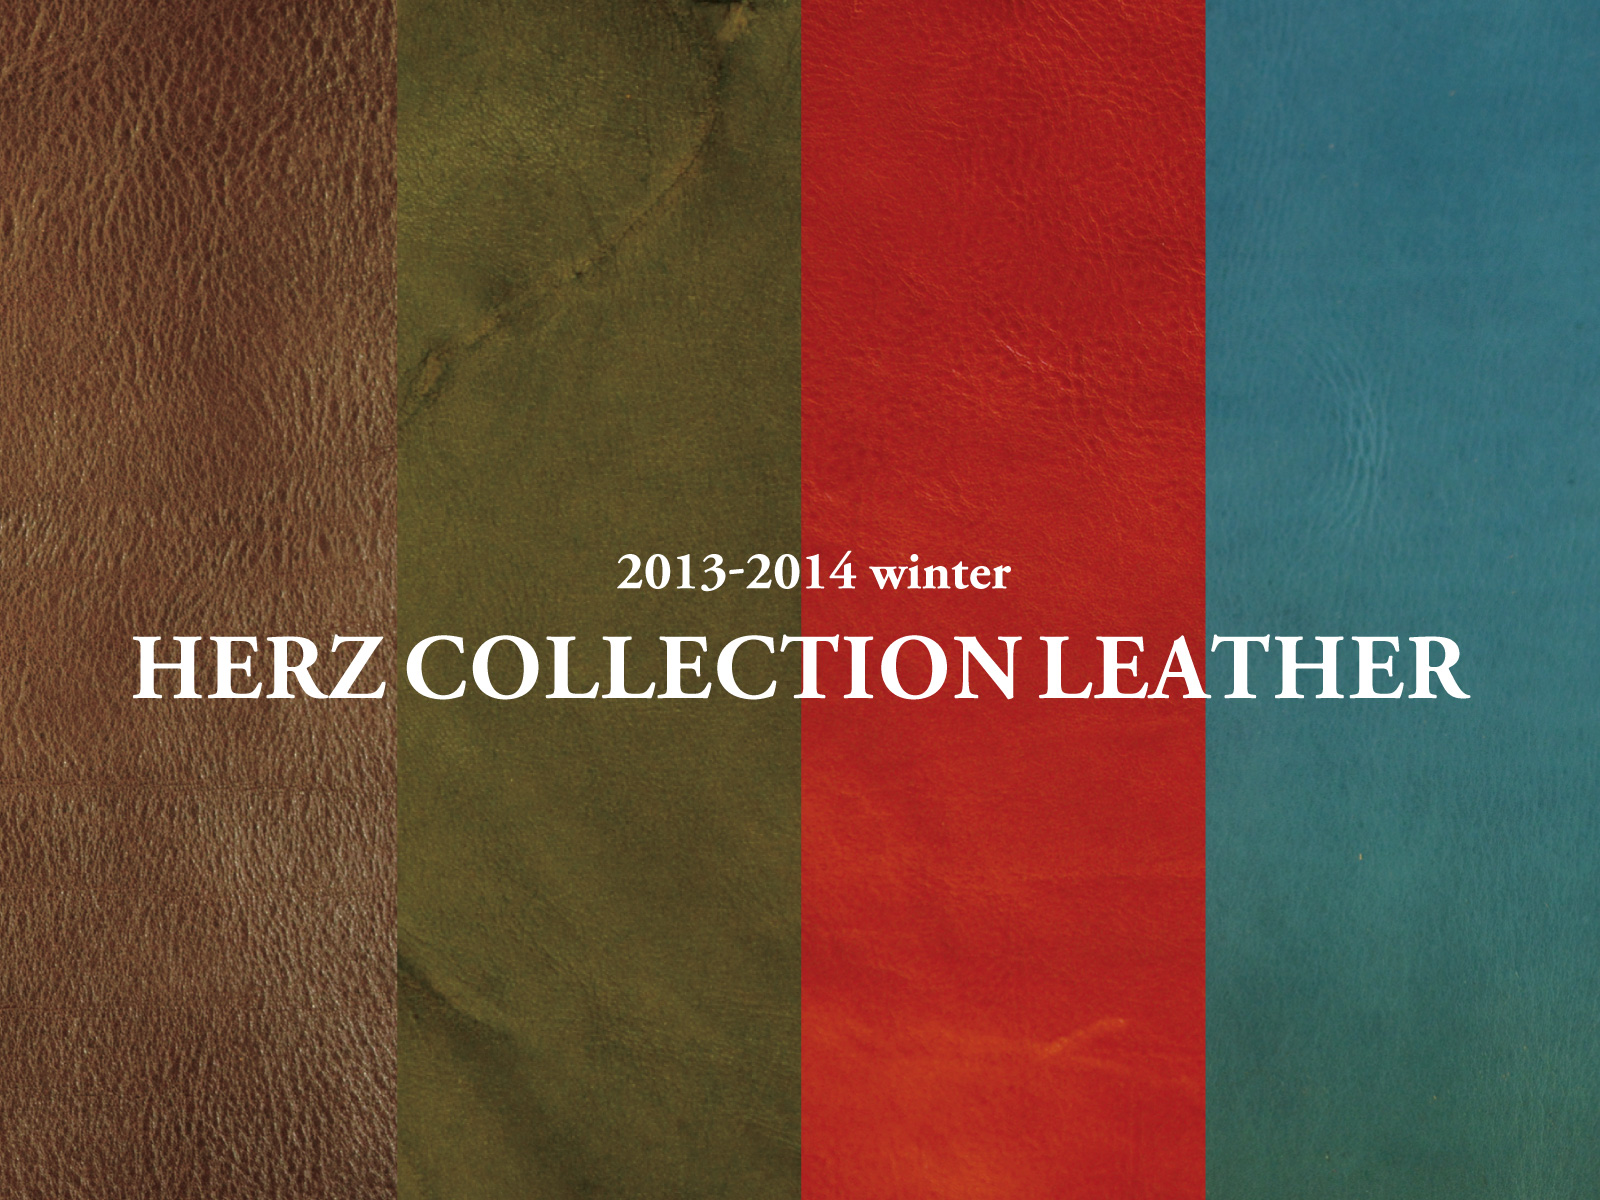 ARTT2013年11月末 SHERZ COLLECTION LEATHER2014 winter-2013